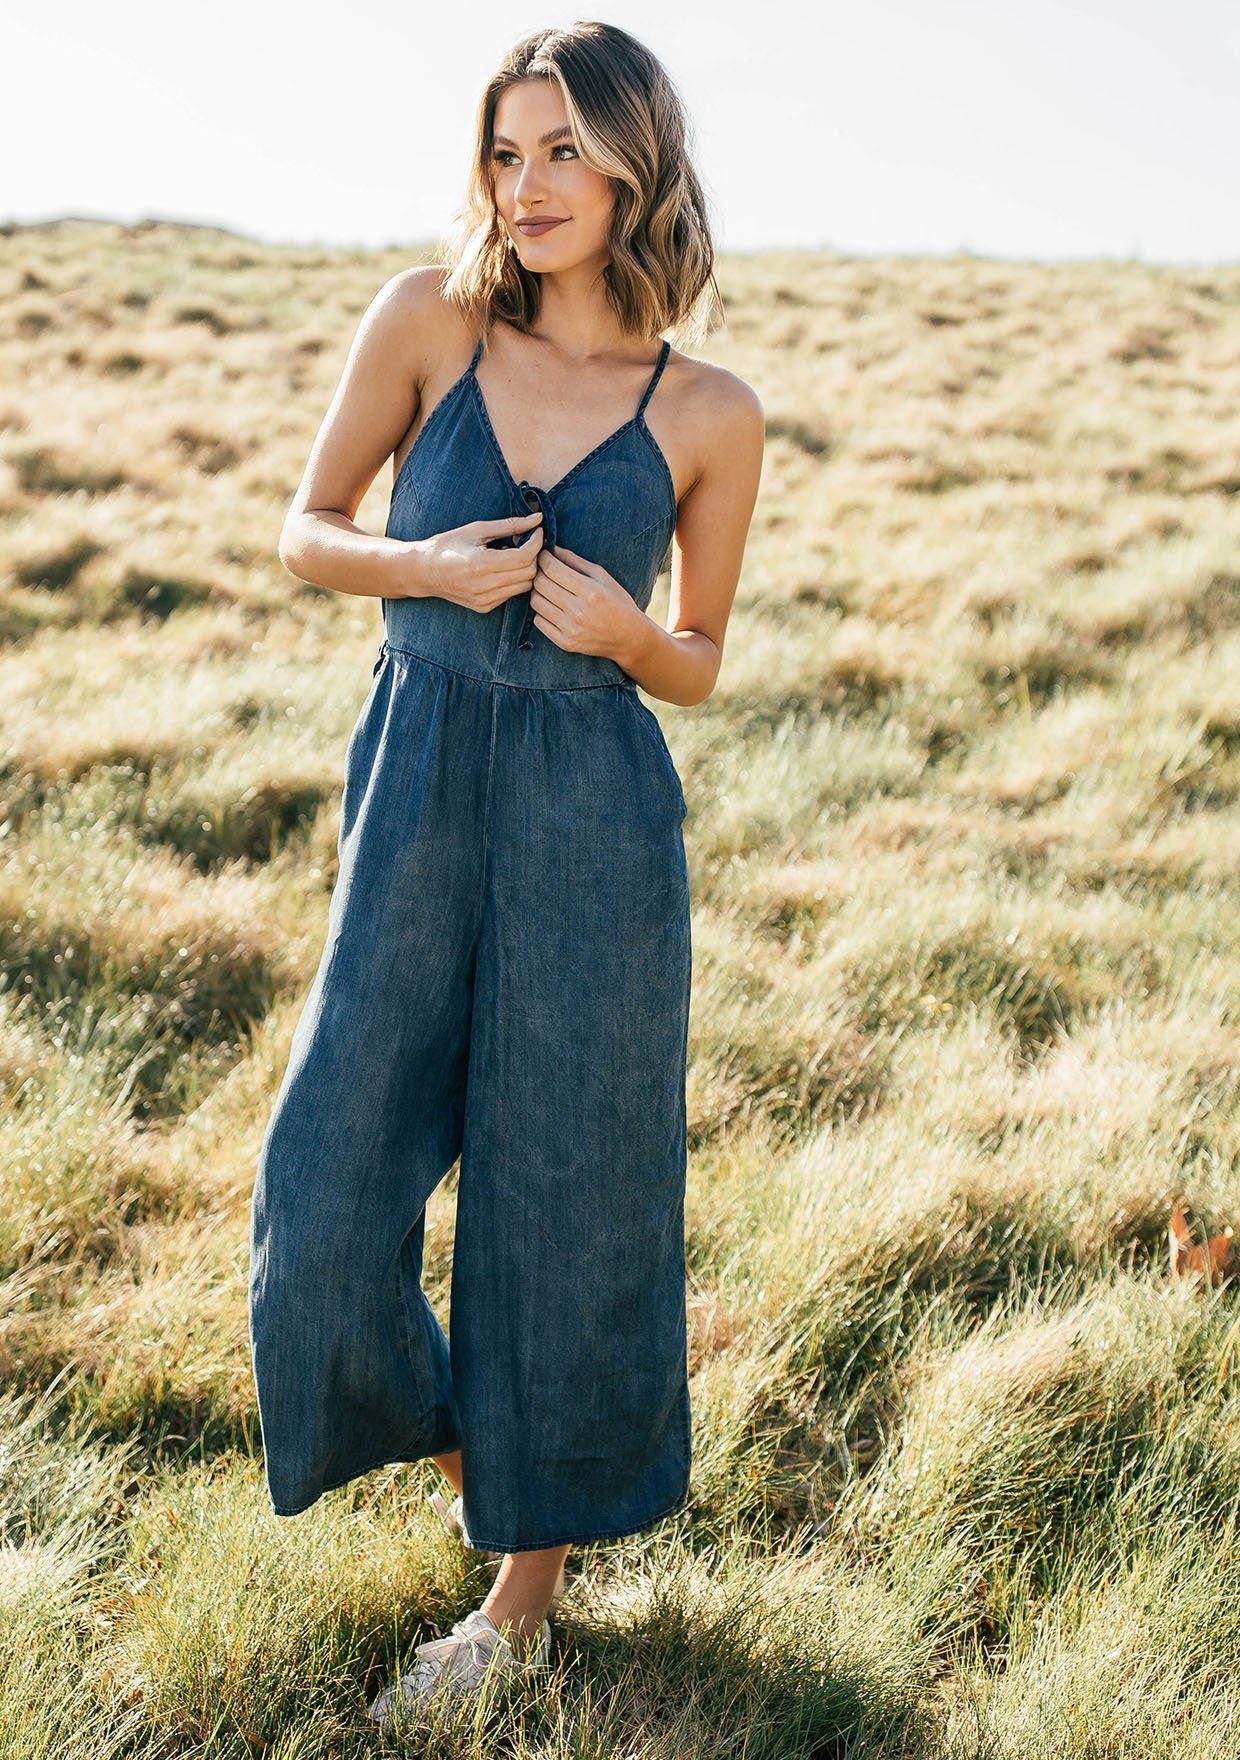 [Color: Dark Wash] Lovestitch lightweight, cropped gaucho wide leg tencel jumpsuit featuring keyhole tie front detail, criss-cross strappy back, adjustable skinny straps and side pockets.